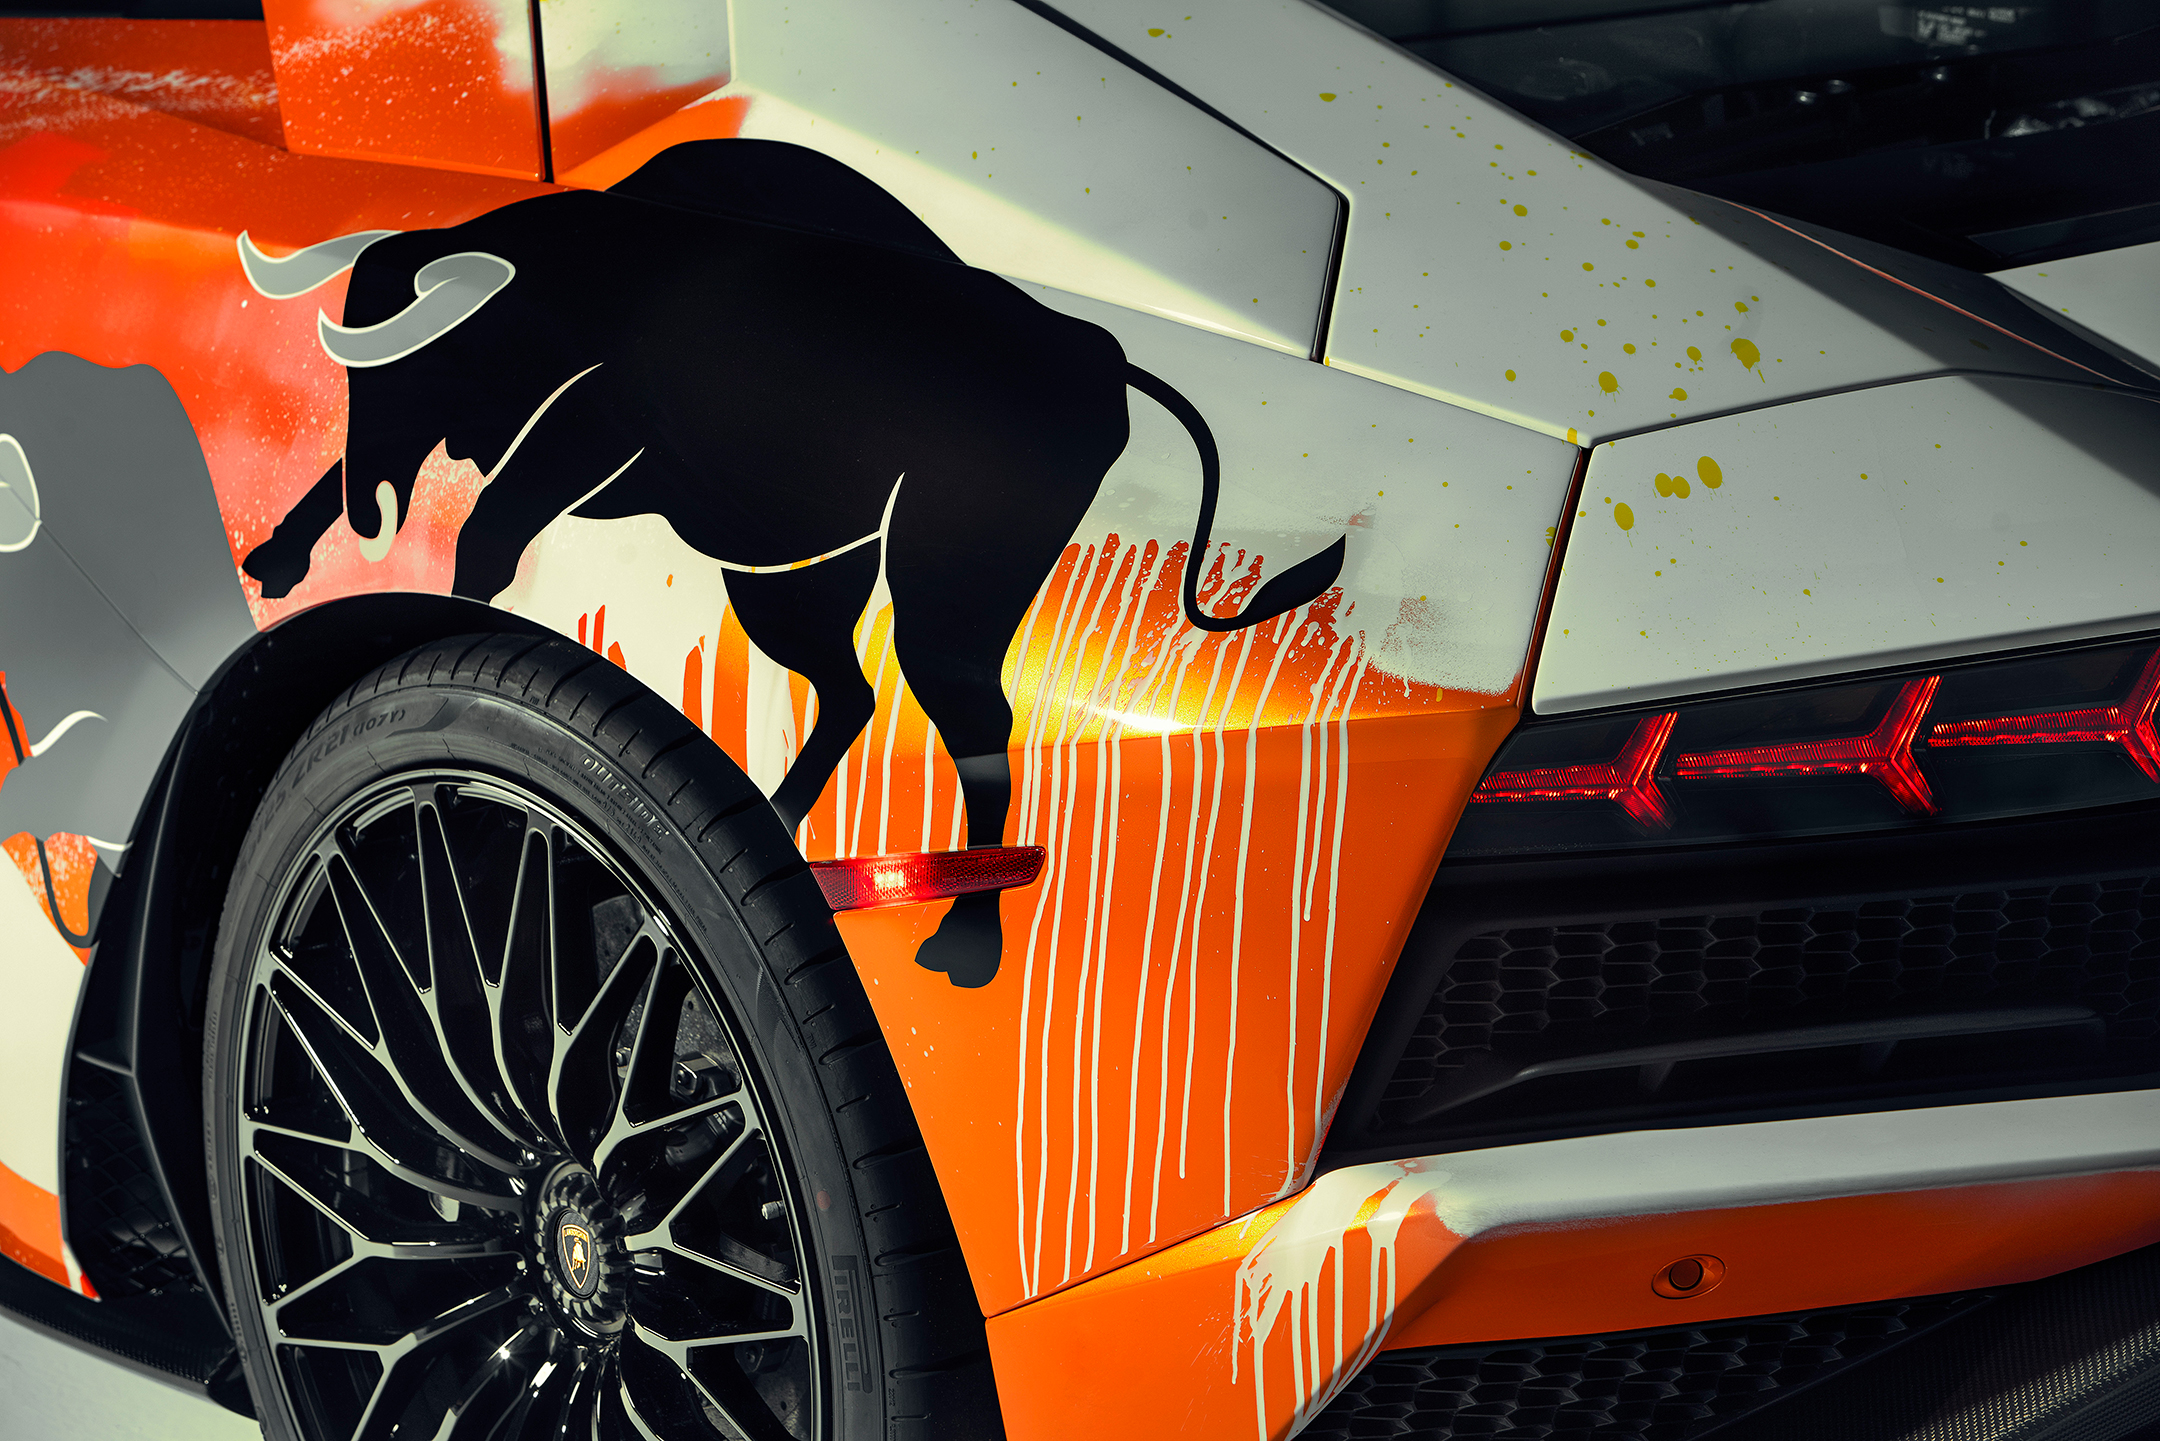 Lamborghini one-off Aventador S by Skyler Grey Art - 2019 - rear light